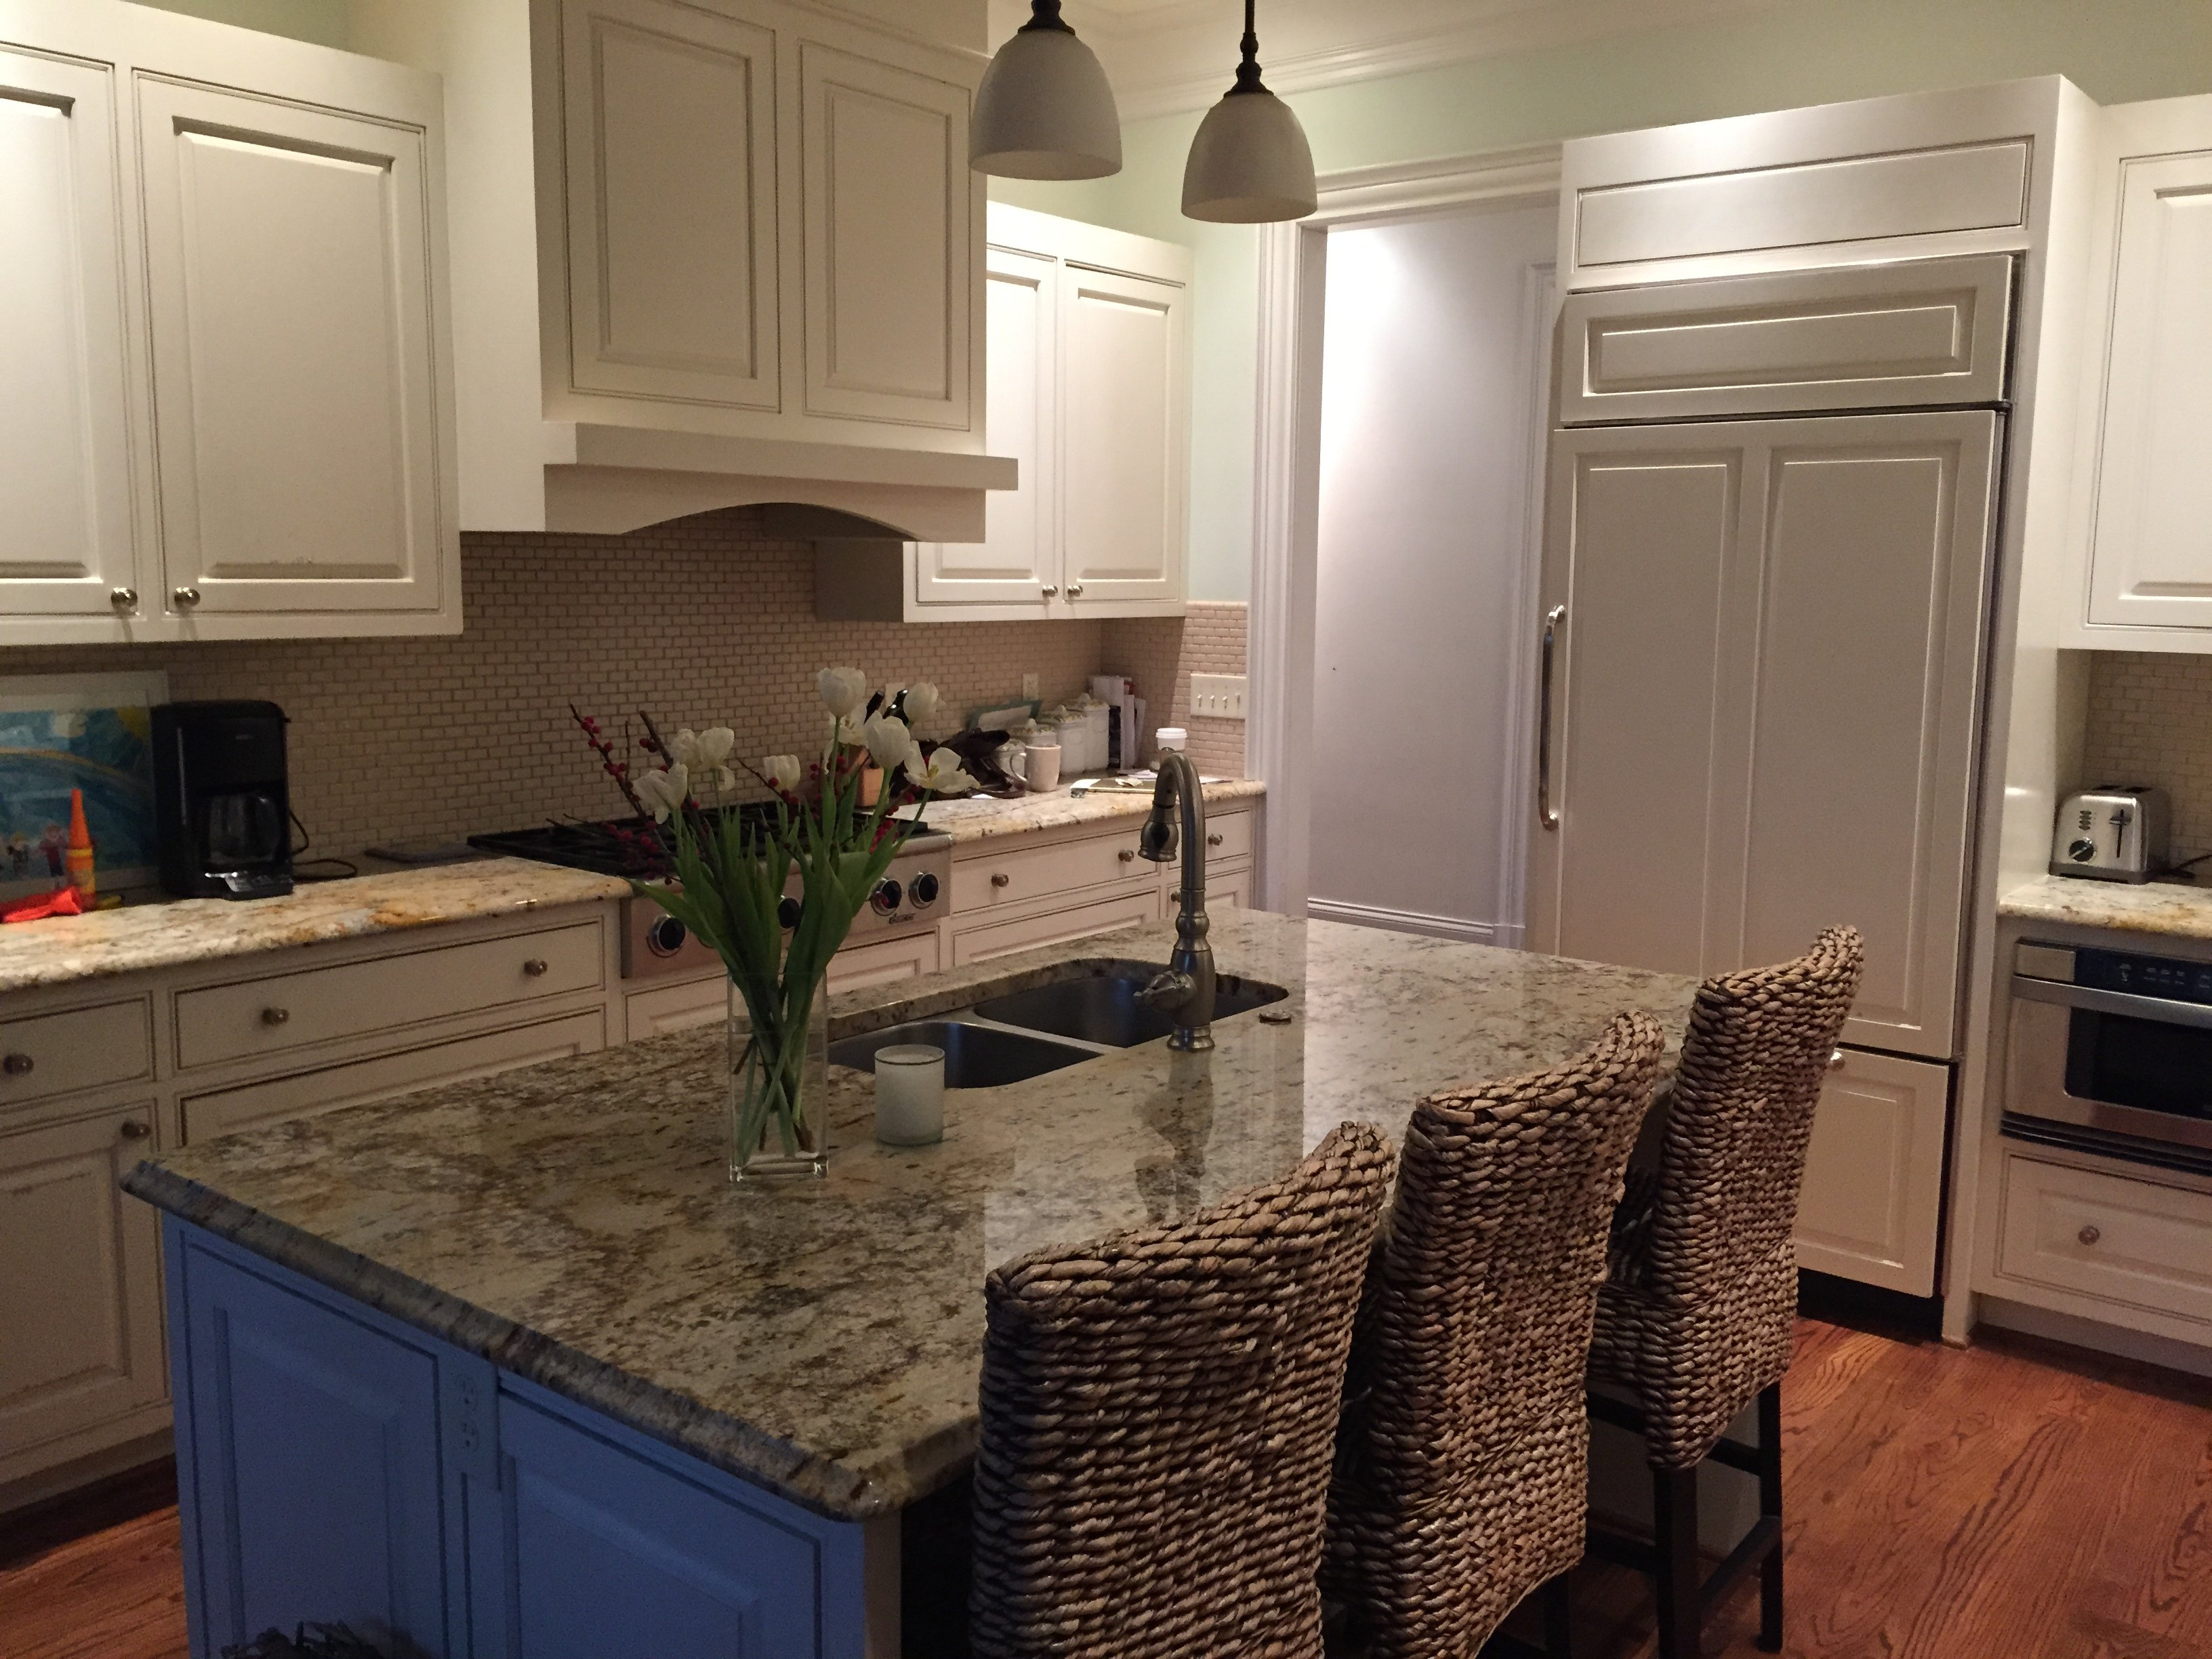 Residential Commercial Remodeling Construction Services